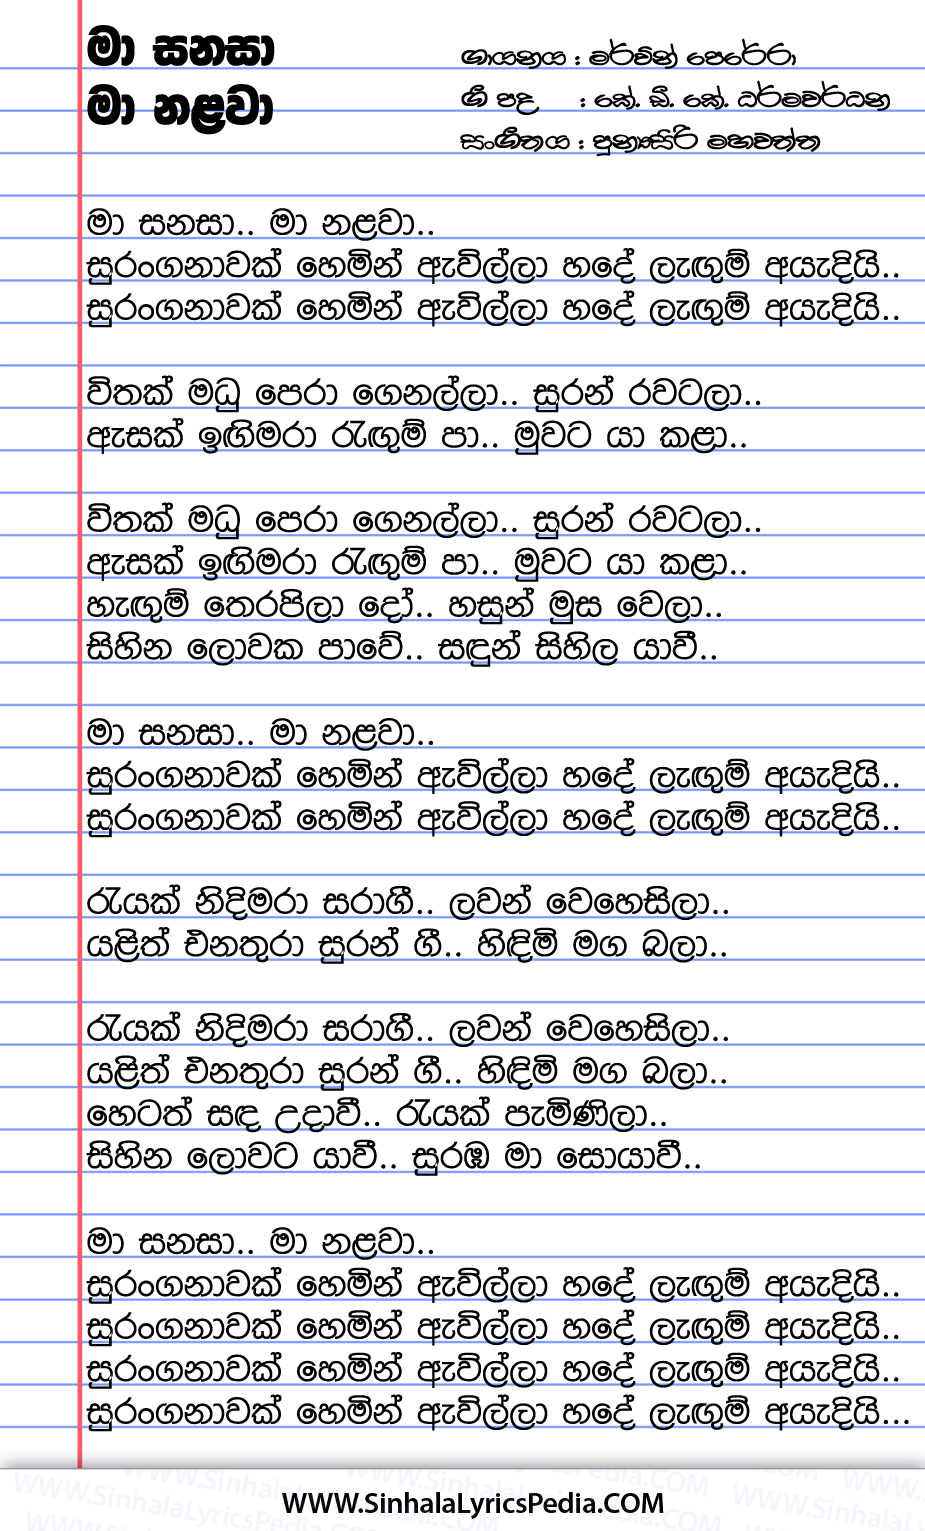 Ma Sanasa Ma Nalawa Song Lyrics